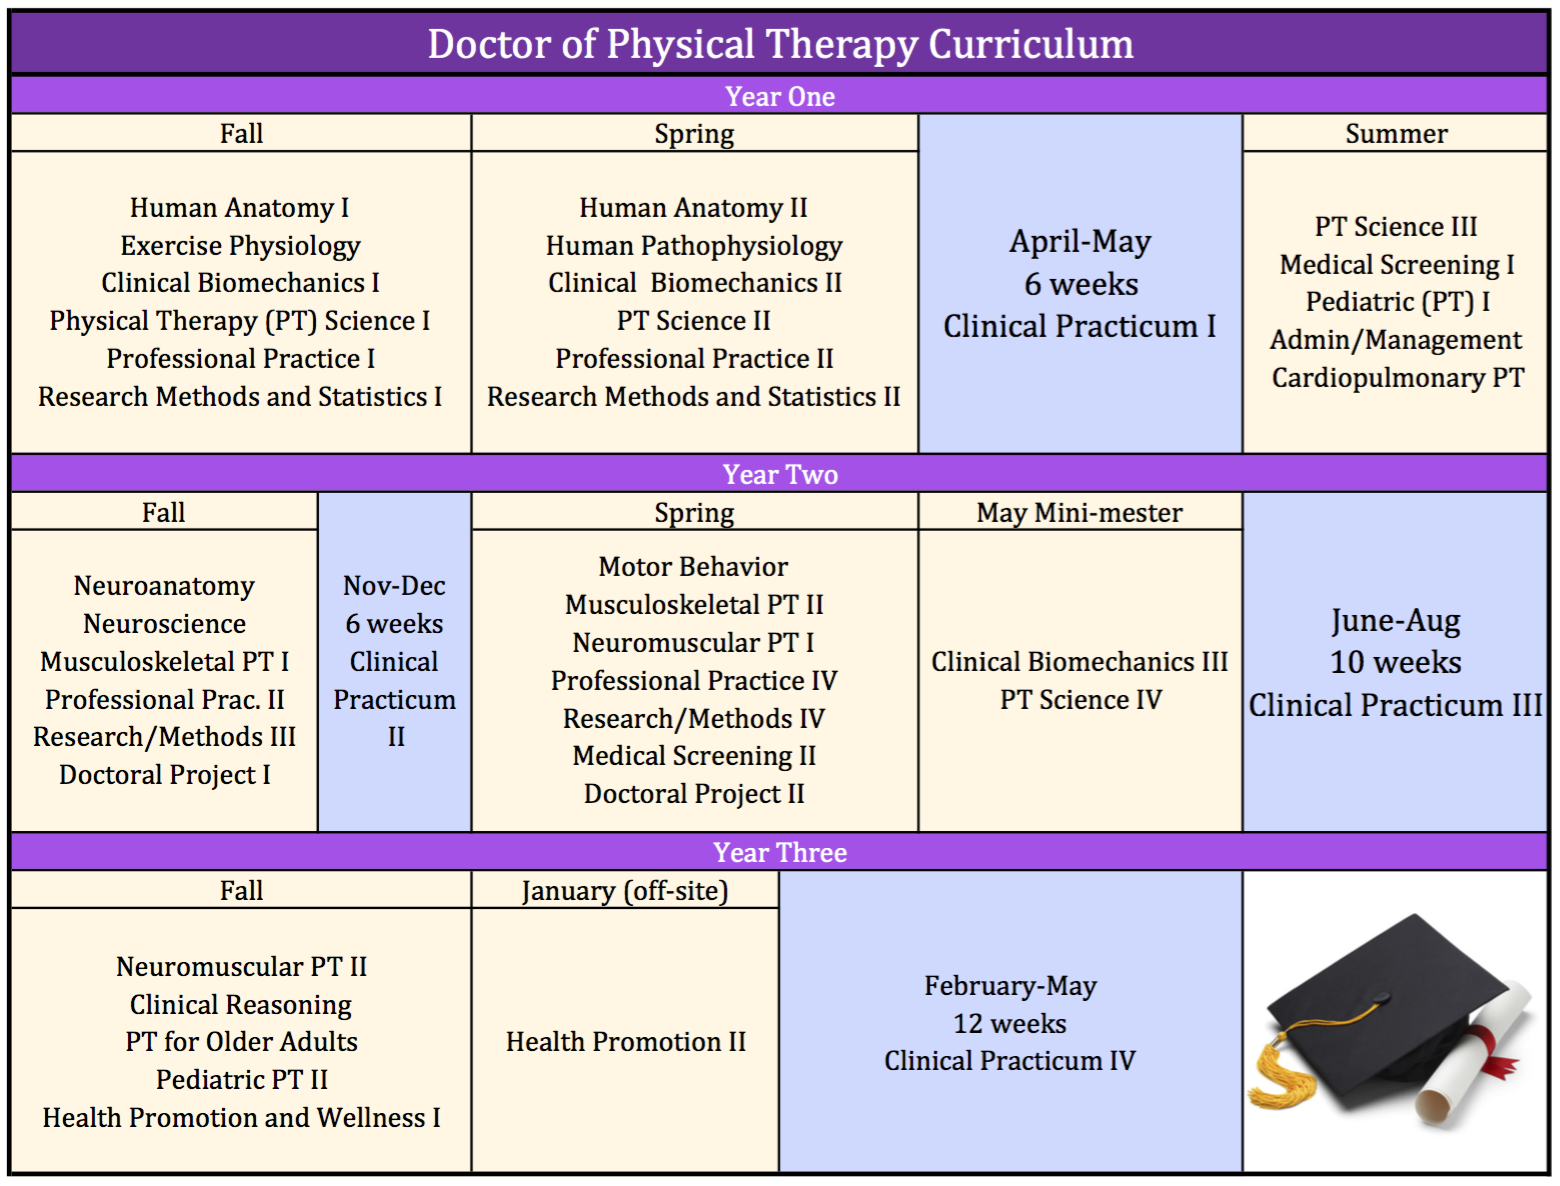 Generalist physical therapy - Curriculum Chart Begin Your Doctor Of Physical Therapy